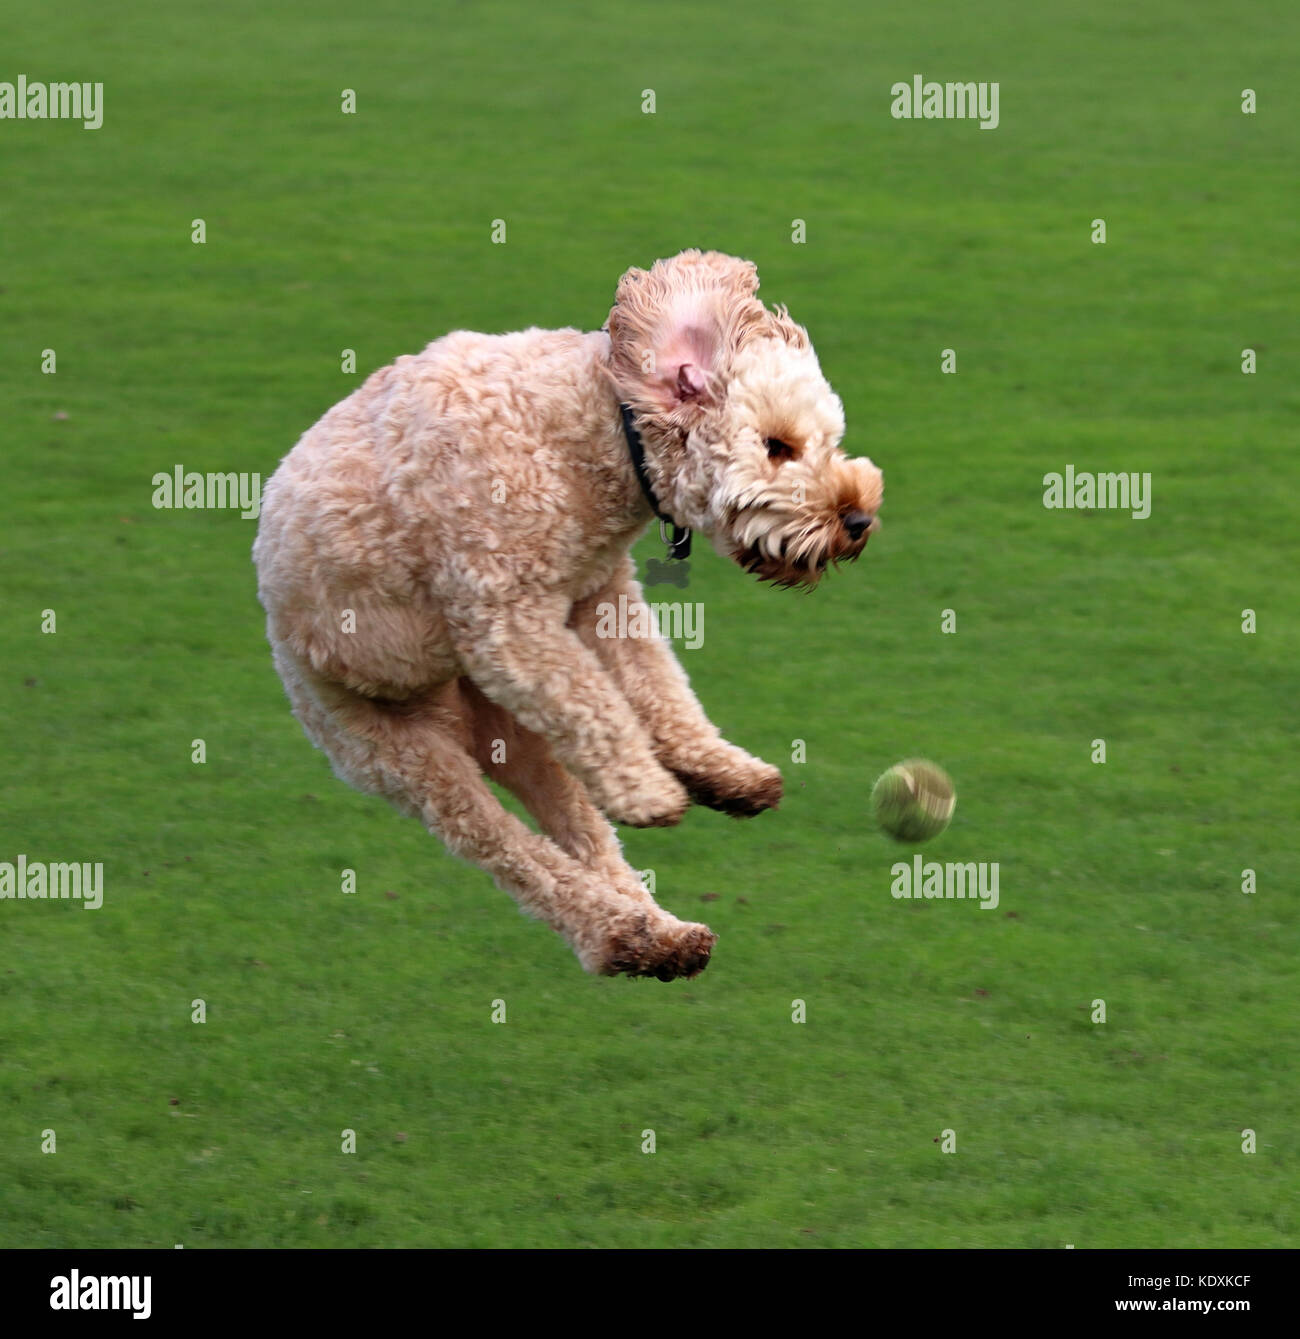 Cockapoo Dog in the air - Stock Image